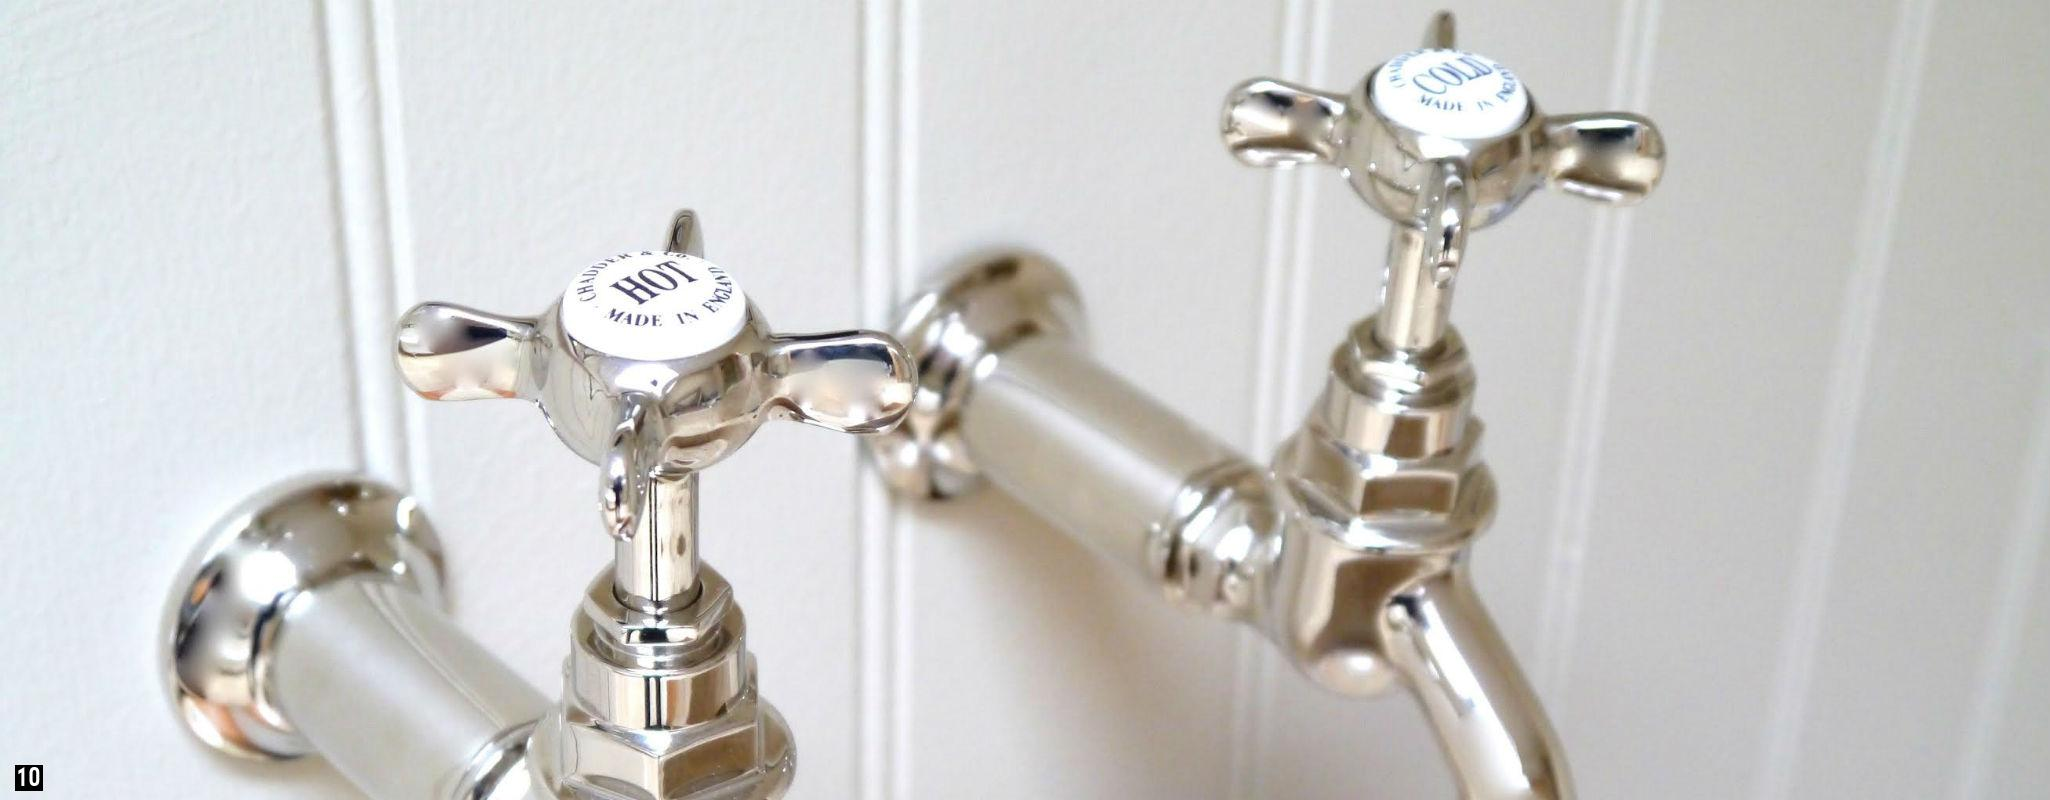 Nickel   Bib Taps , Nickel  Kitchen Taps ,Nickel  Bib Taps